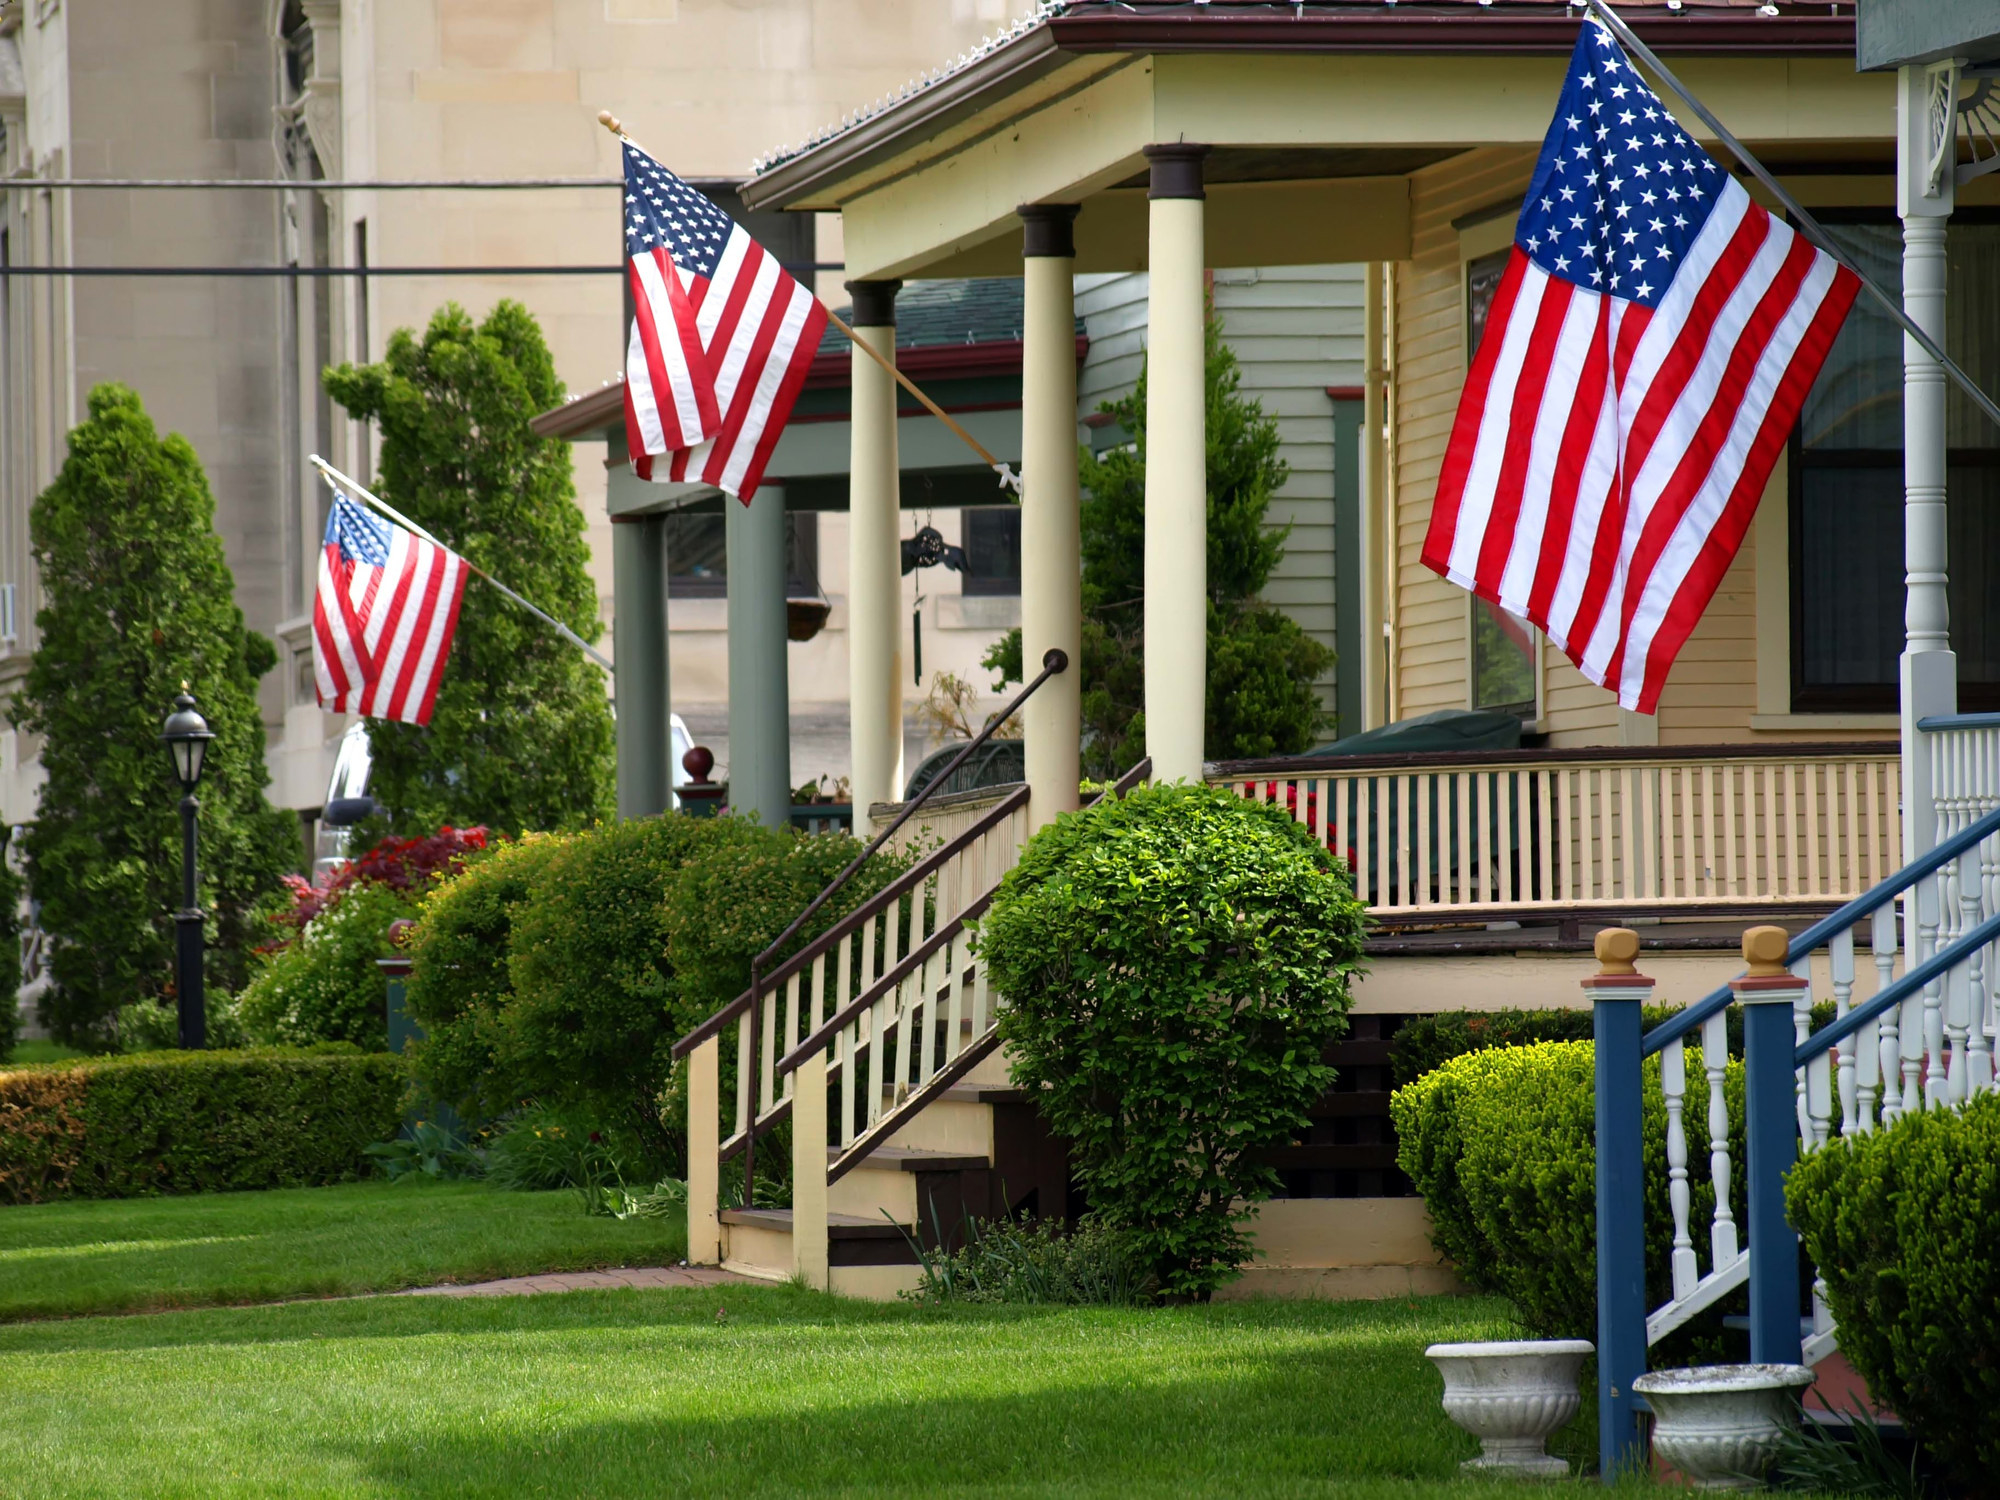 American flags flying on porches.